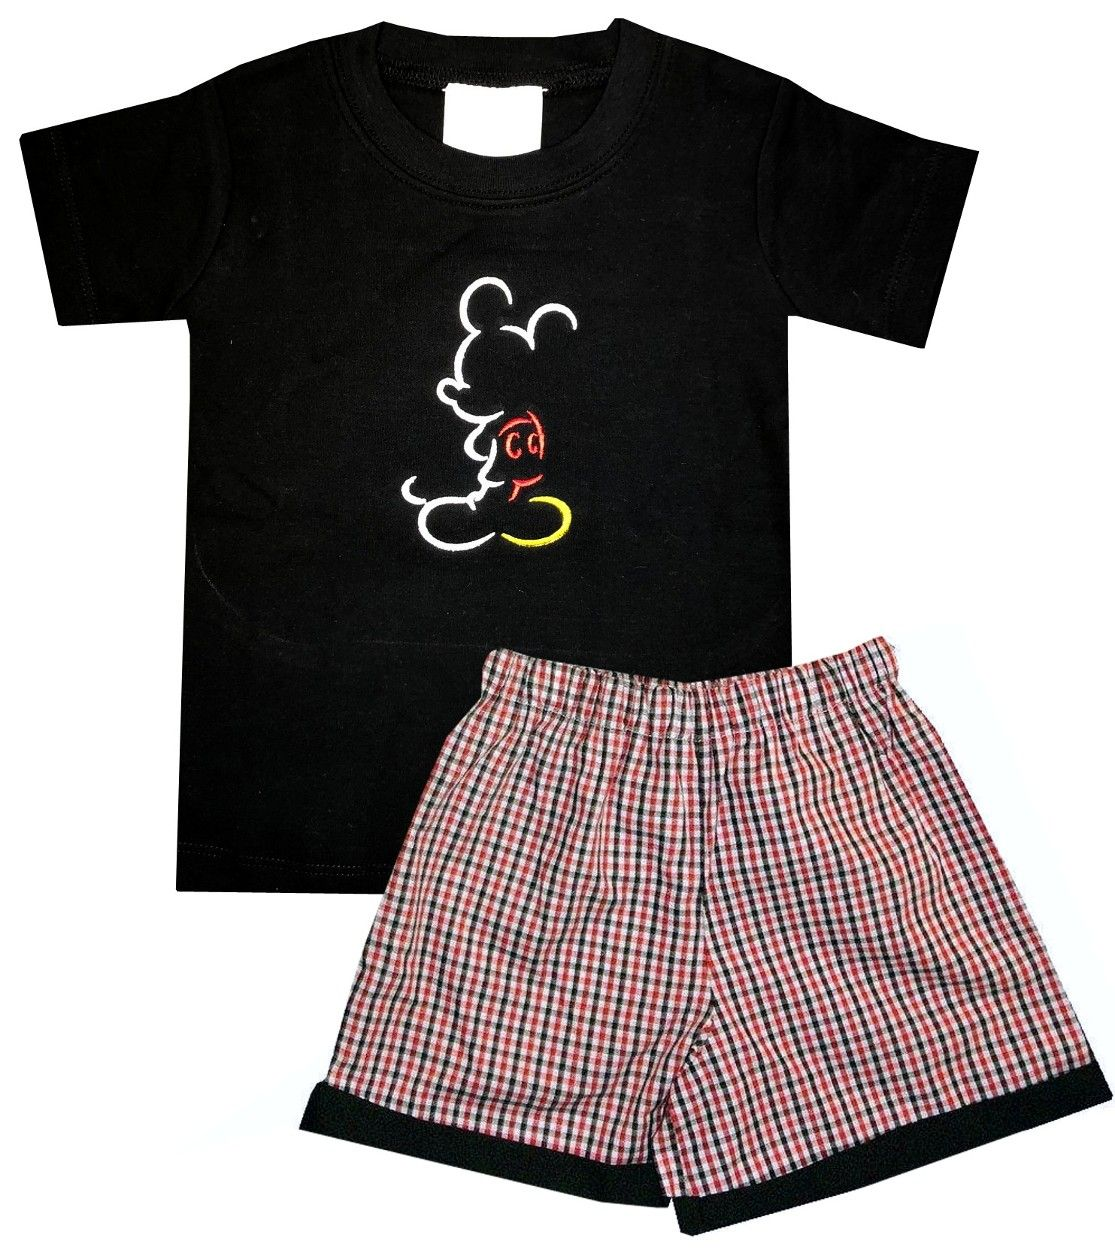 f0a0e490cda265 disney-boy-s-mickey-mouse-outline-shirt-and-shorts-outfit-9.jpg